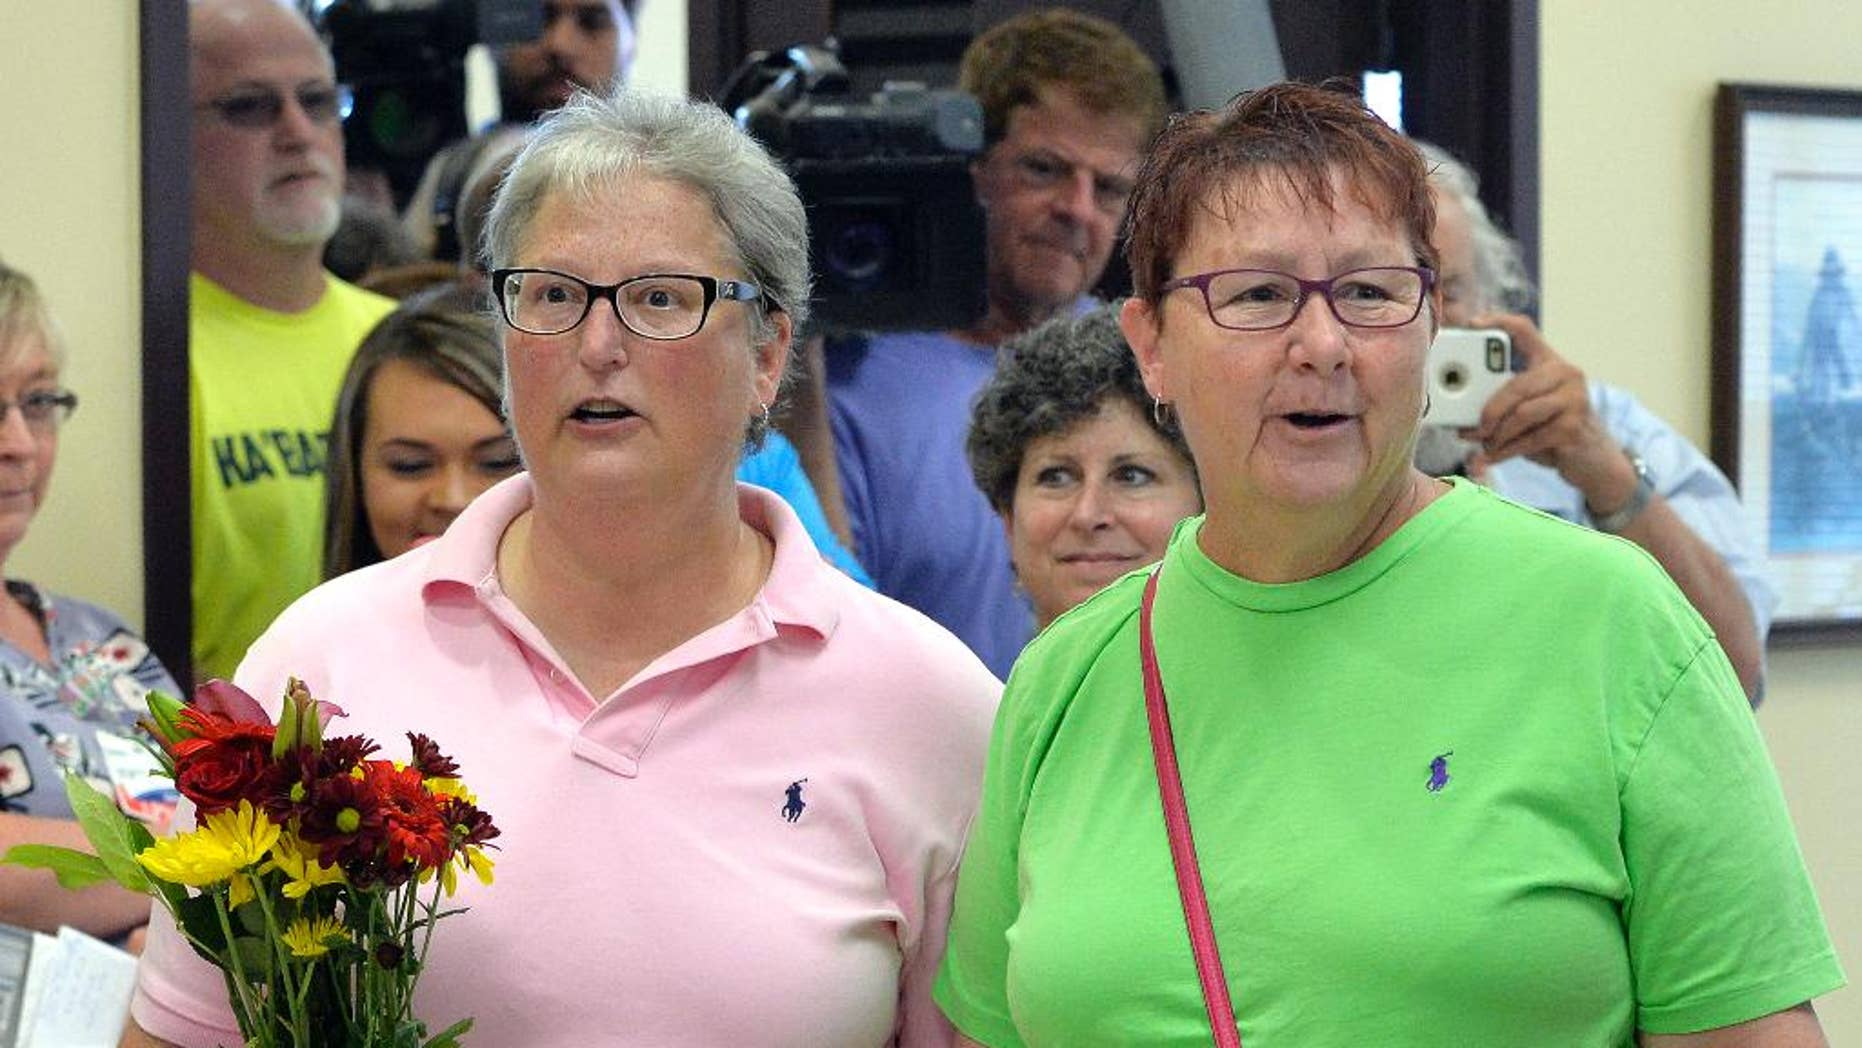 April Miller, left, and her partner Karen Roberts arrive to obtain their marriage license at the Rowan County Judicial Center in Morehead, Ky., Friday, Sept. 4, 2015. Miller, one of the plaintiffs in the suit against Rowan County Clerk Kim Davis, applied for her license with her partner less than 24 hours after Davis was jailed on contempt charges. (AP Photo/Timothy D. Easley)